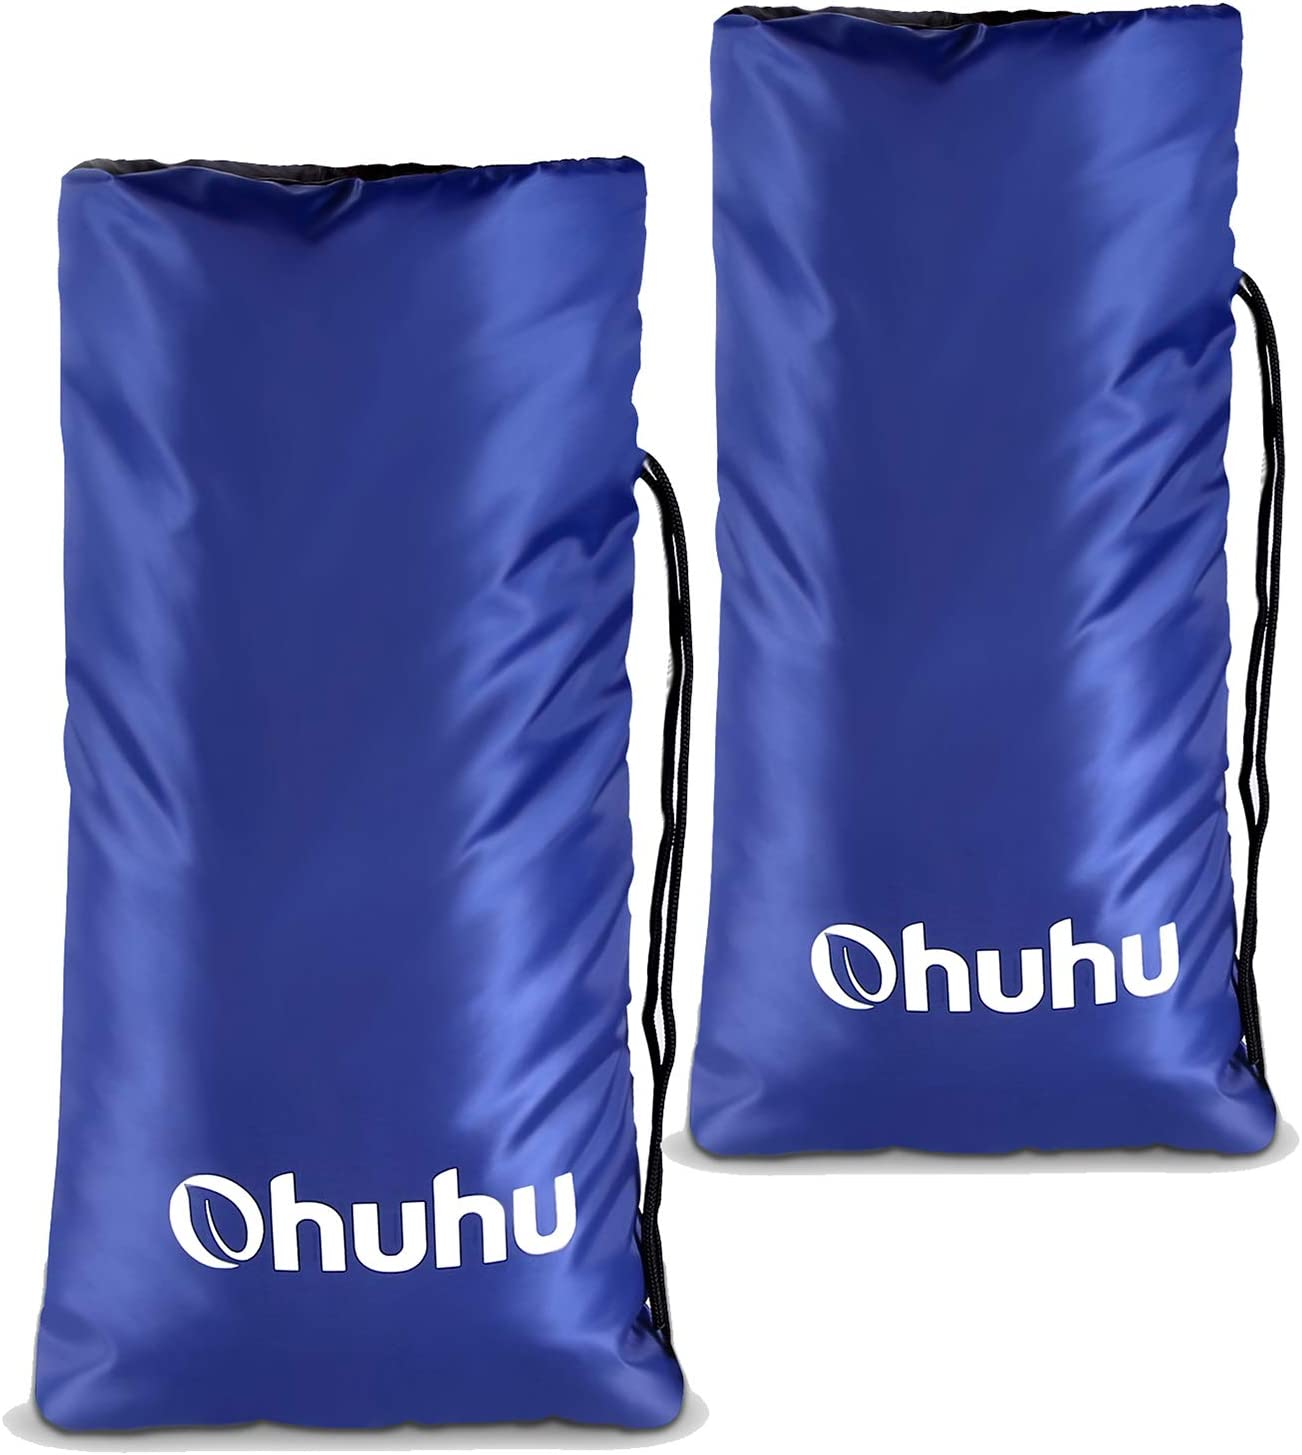 """Ohuhu Outdoor Faucet Cover for Freeze Protection, 2-Pack Winter Heavy Duty Faucet Protector Cover 19.5"""" x 10"""" Antifreeze Tap Cover, Outside Garden Lawn Faucet Socks Spigot Cover"""